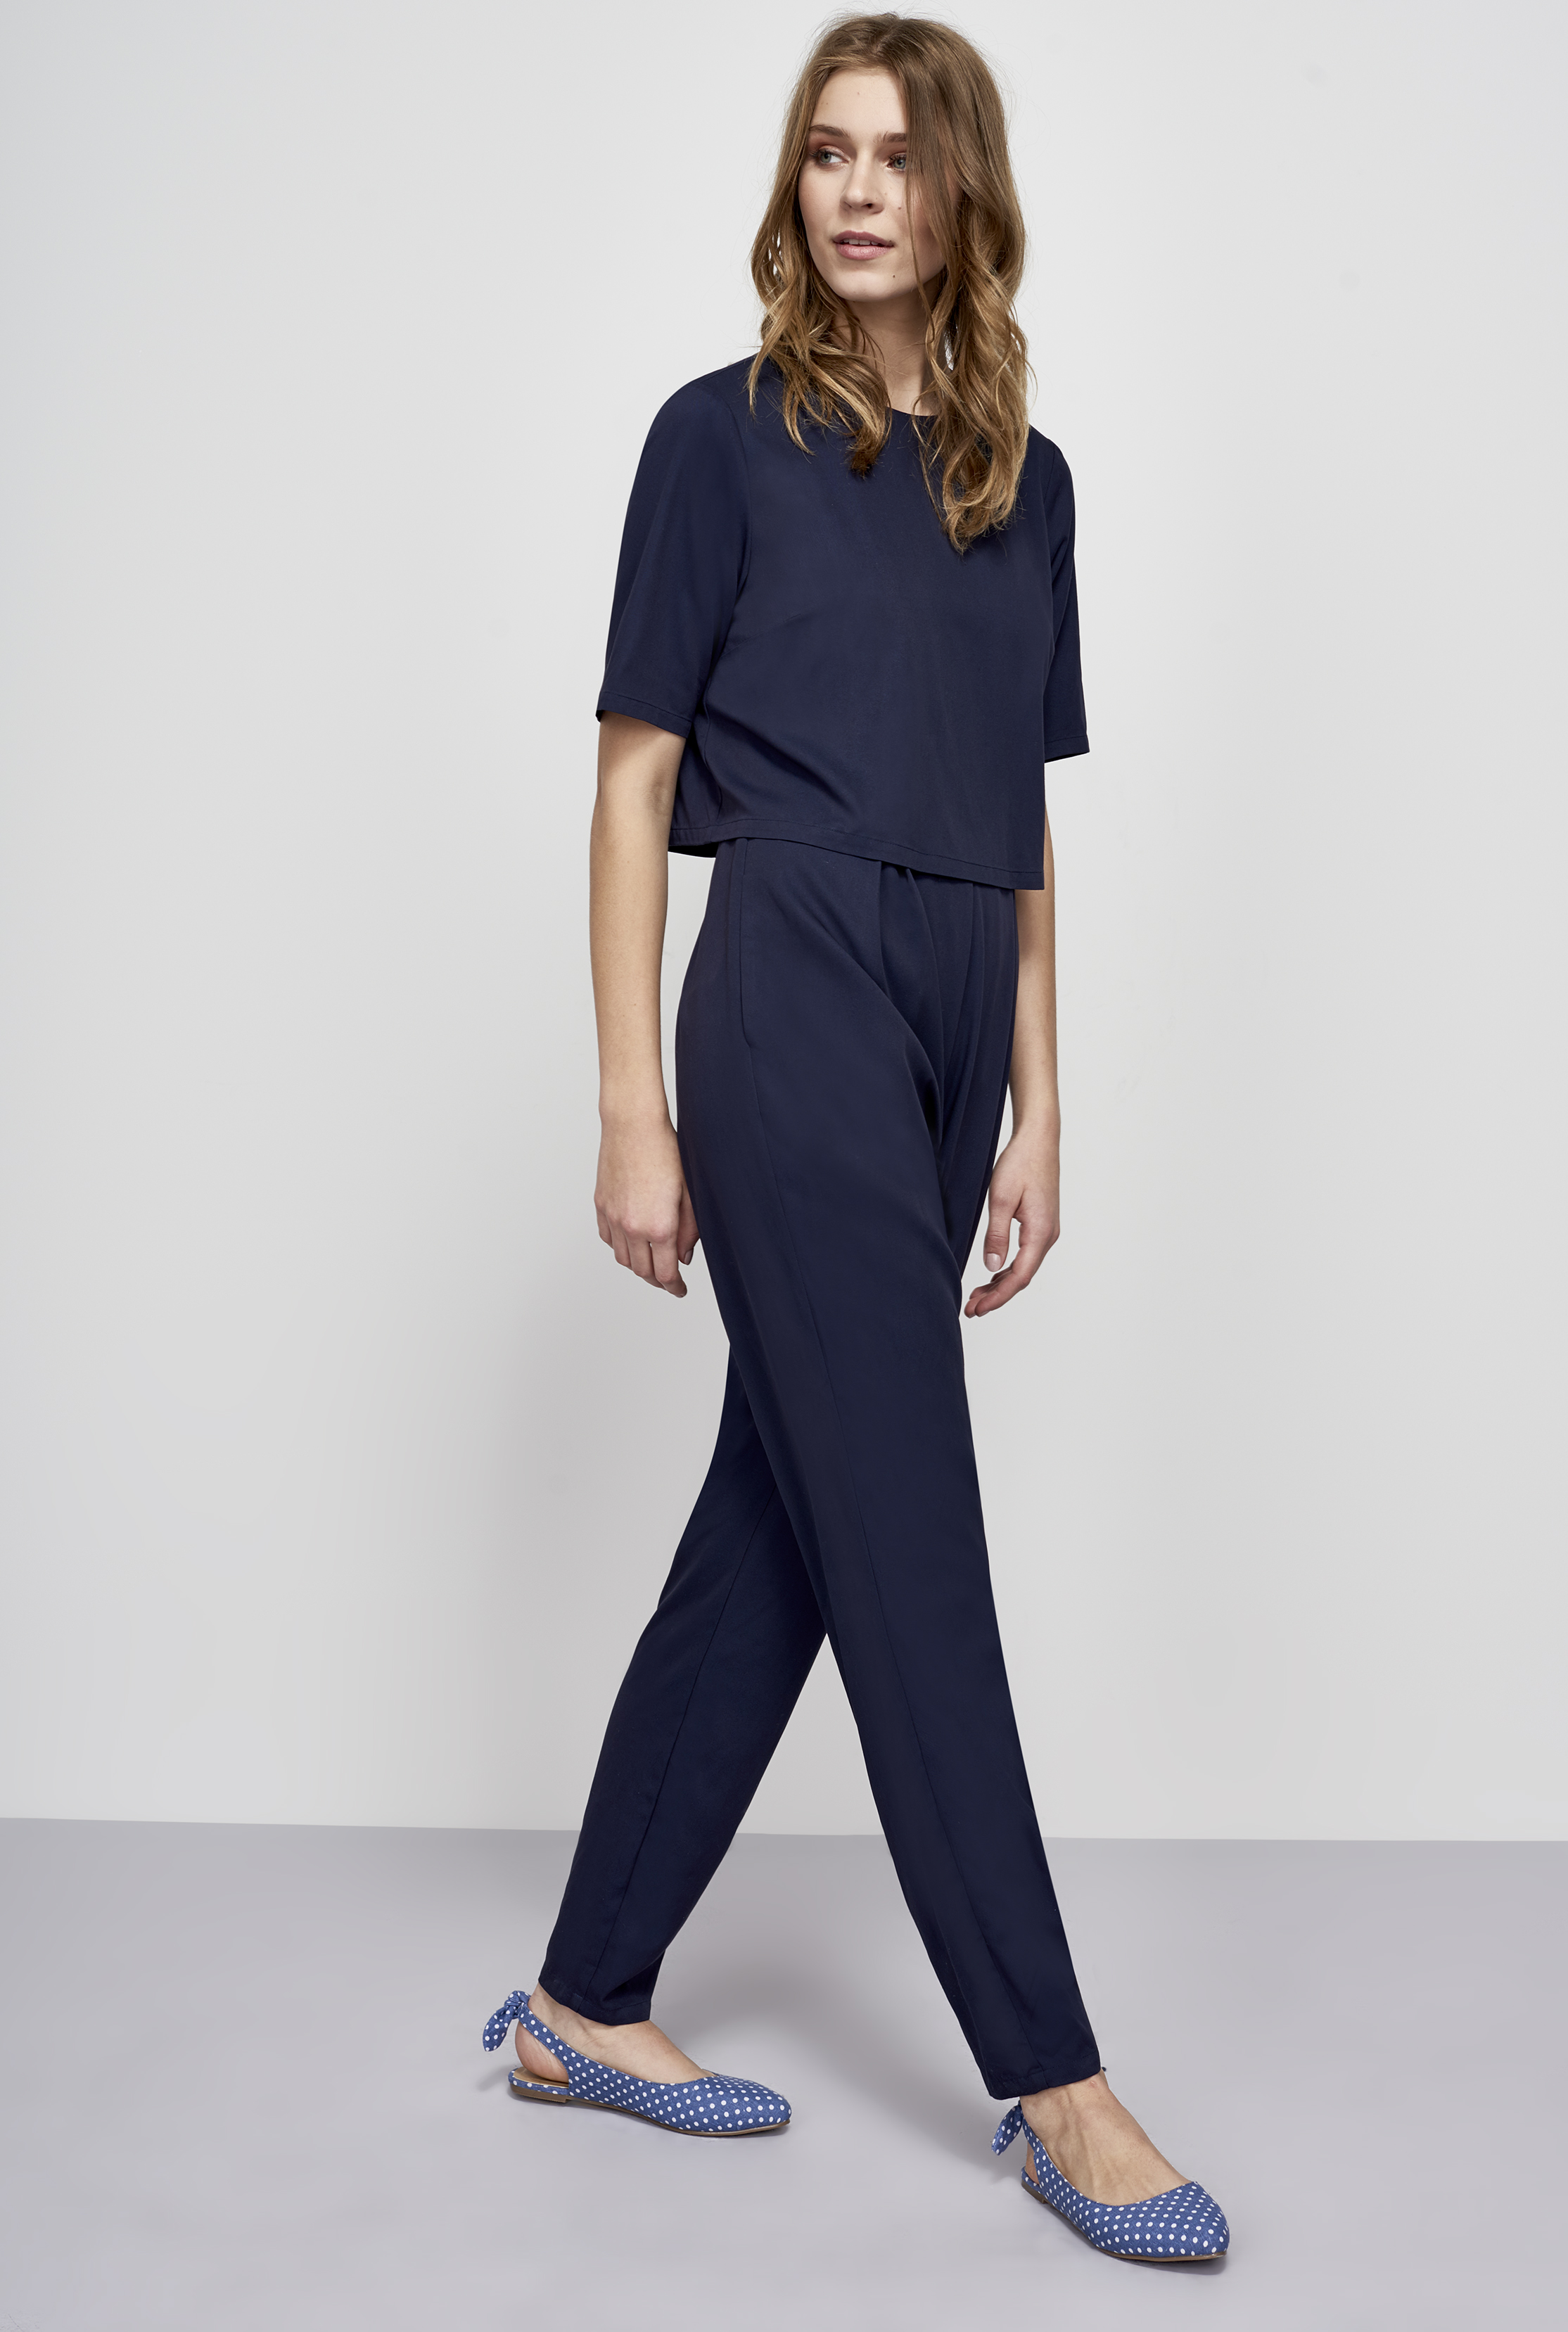 Y.A.S Navy Tall Andra Jumpsuit